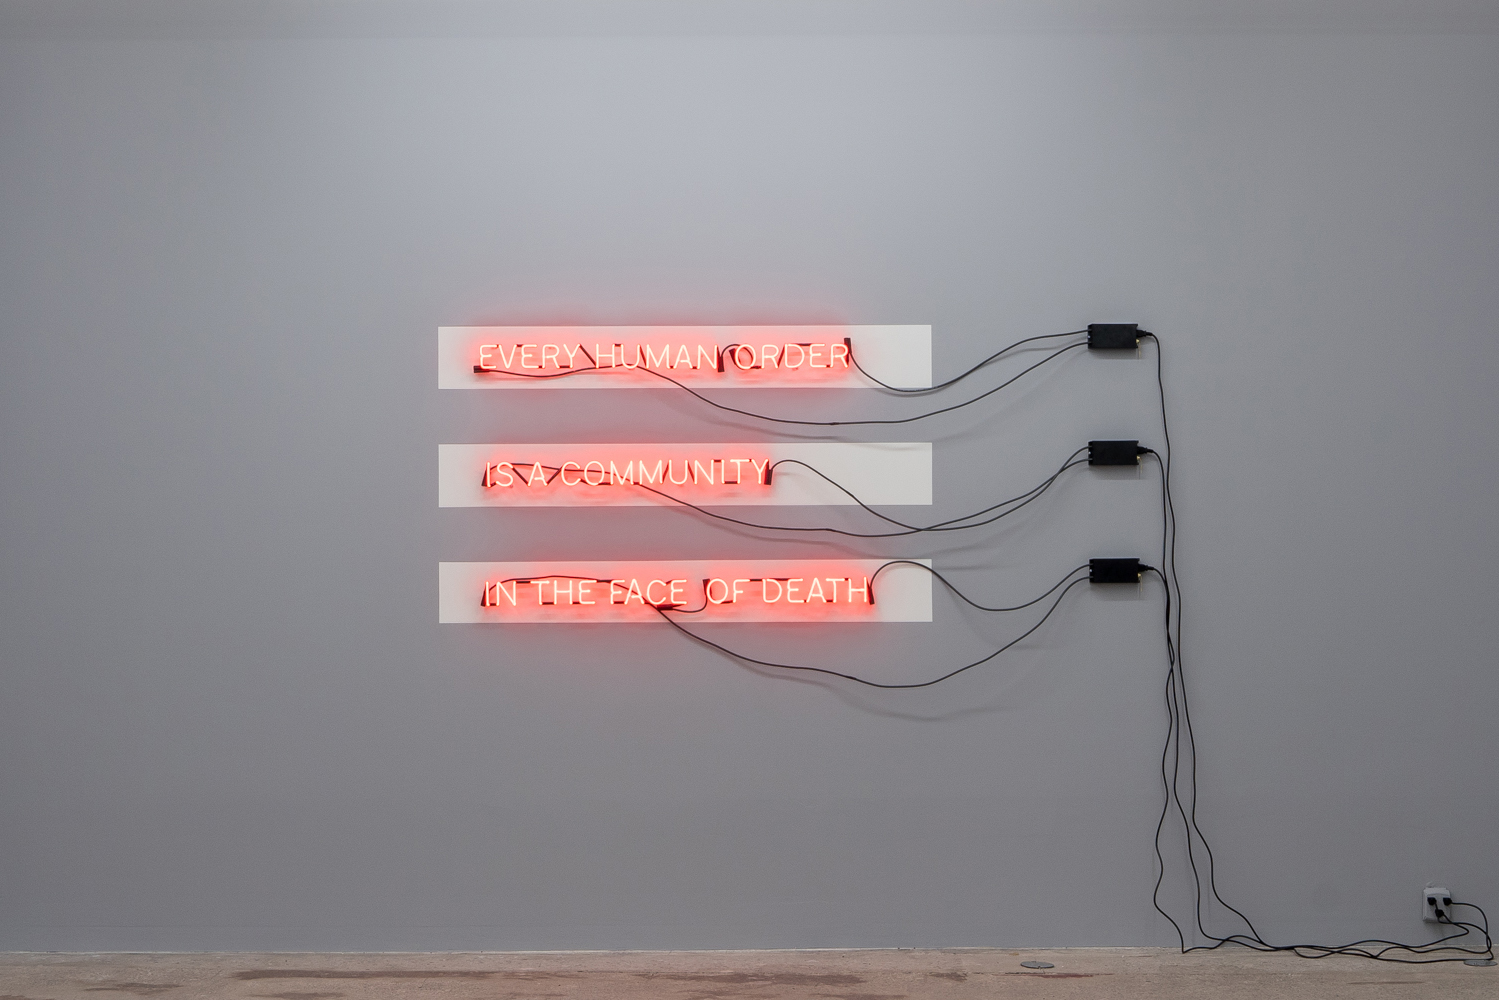 Carl Trahan, In the Face of Death, 2018, neon, electric system and paint, variable dimensions